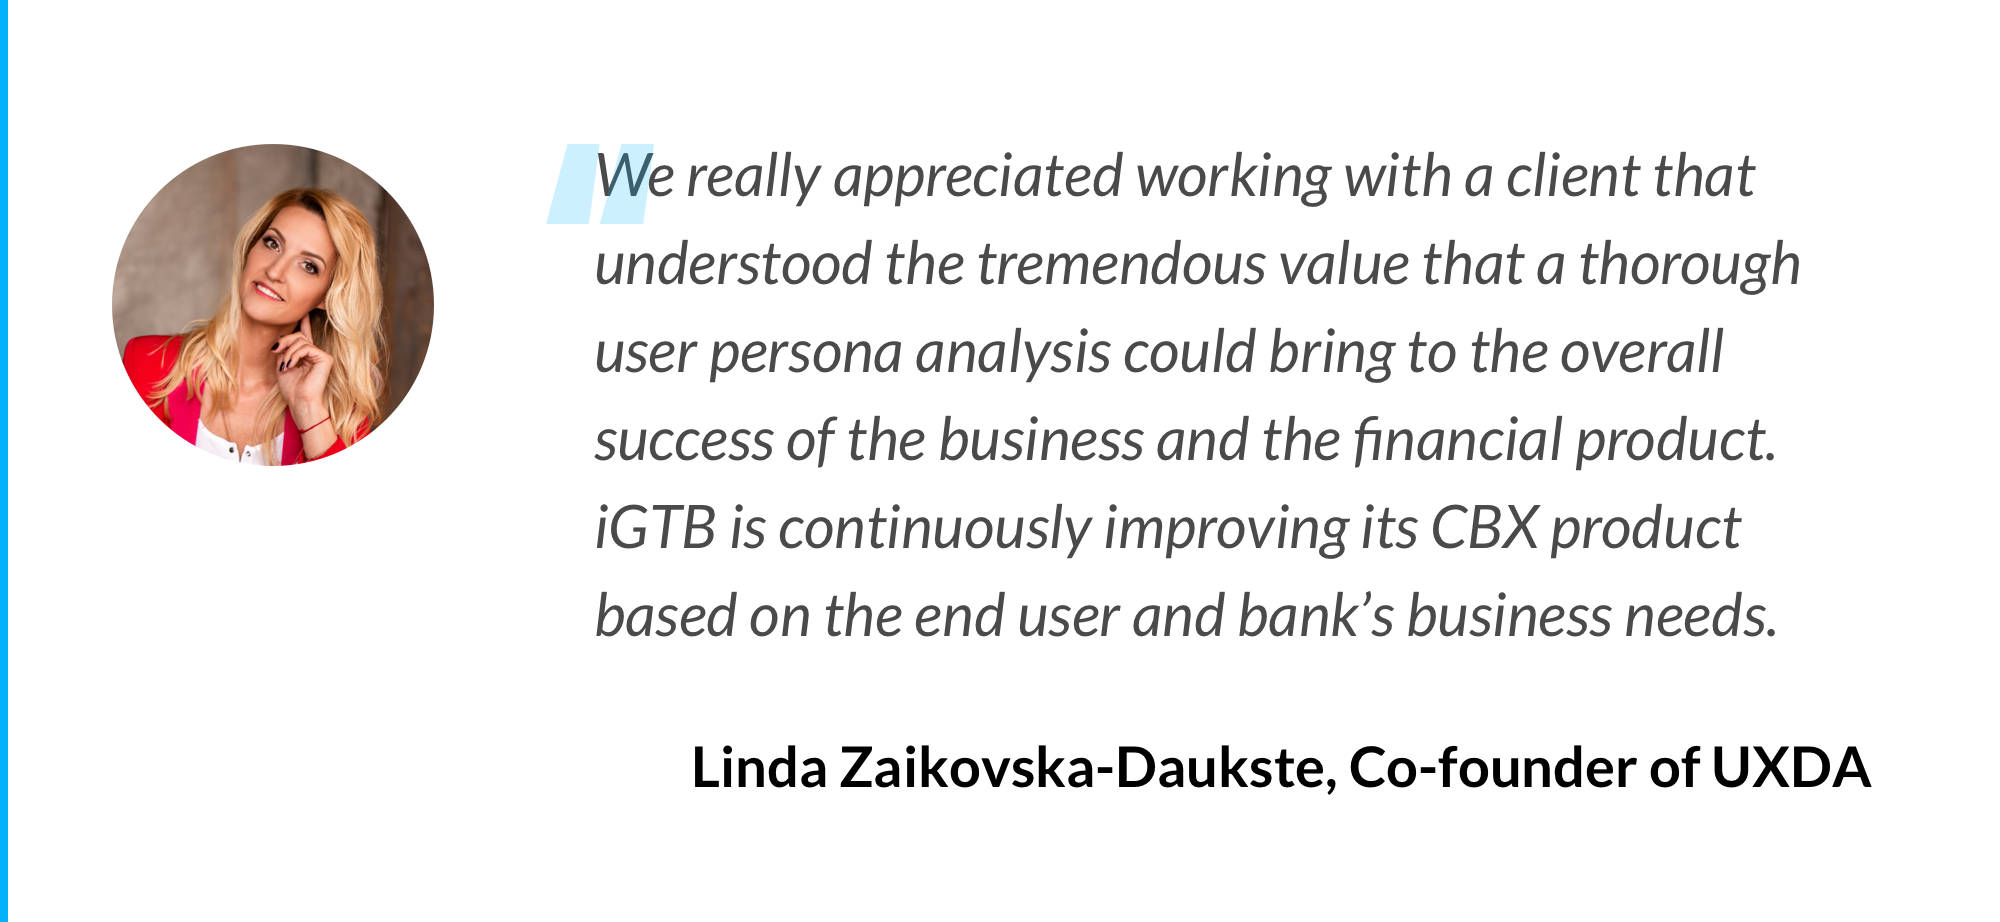 igtb-case-study-quote-linda-zaikovska-daukste-1-at-2x.png